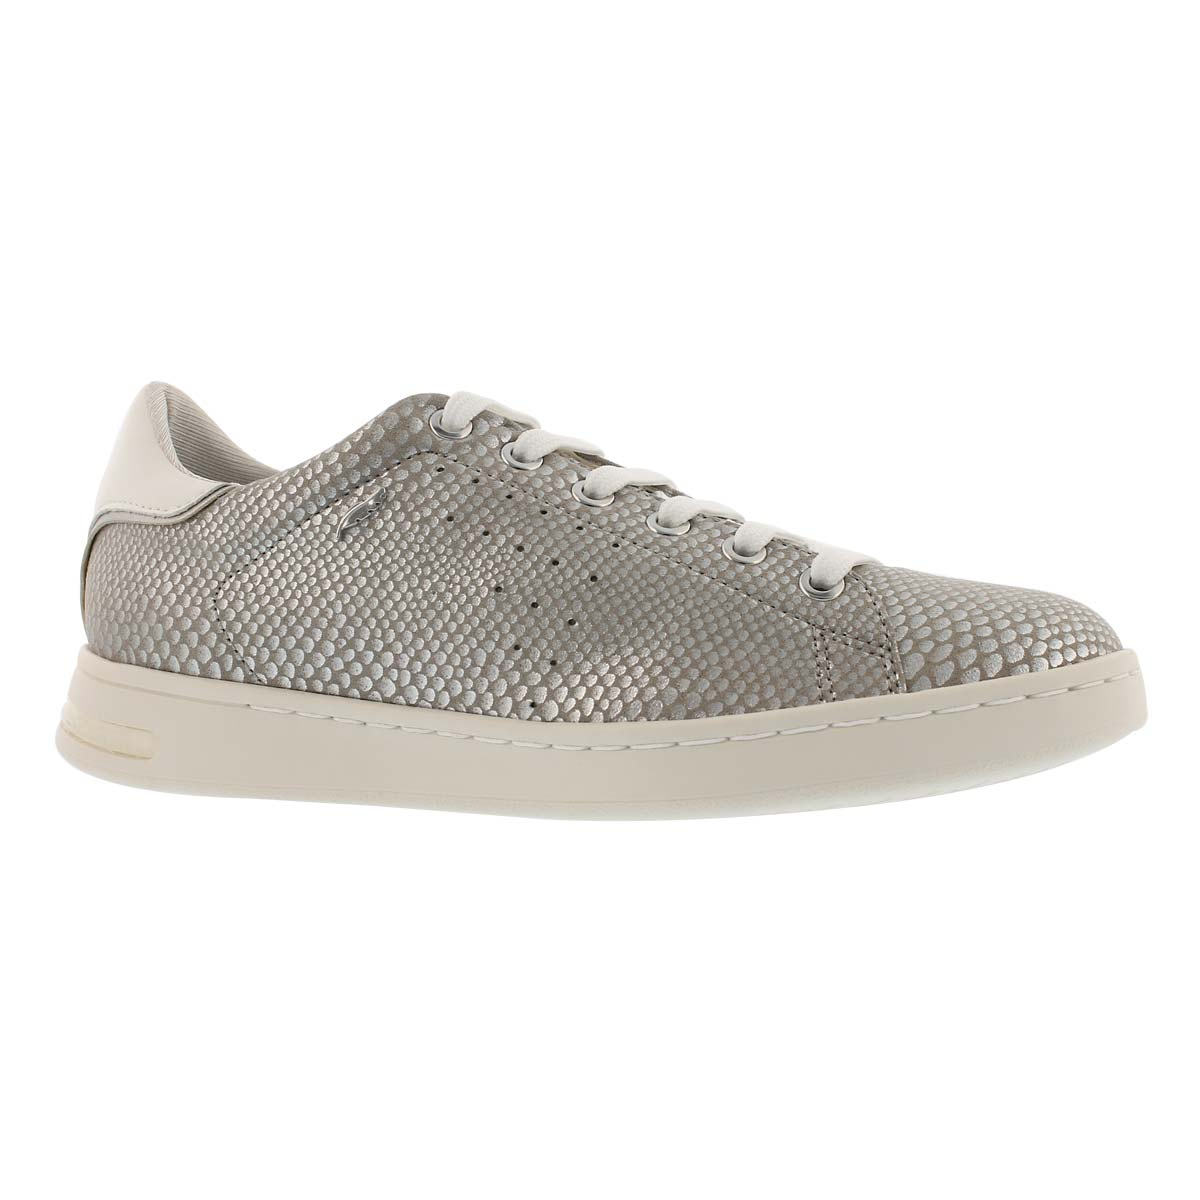 Women's JAYSEN silver lace up sneakers